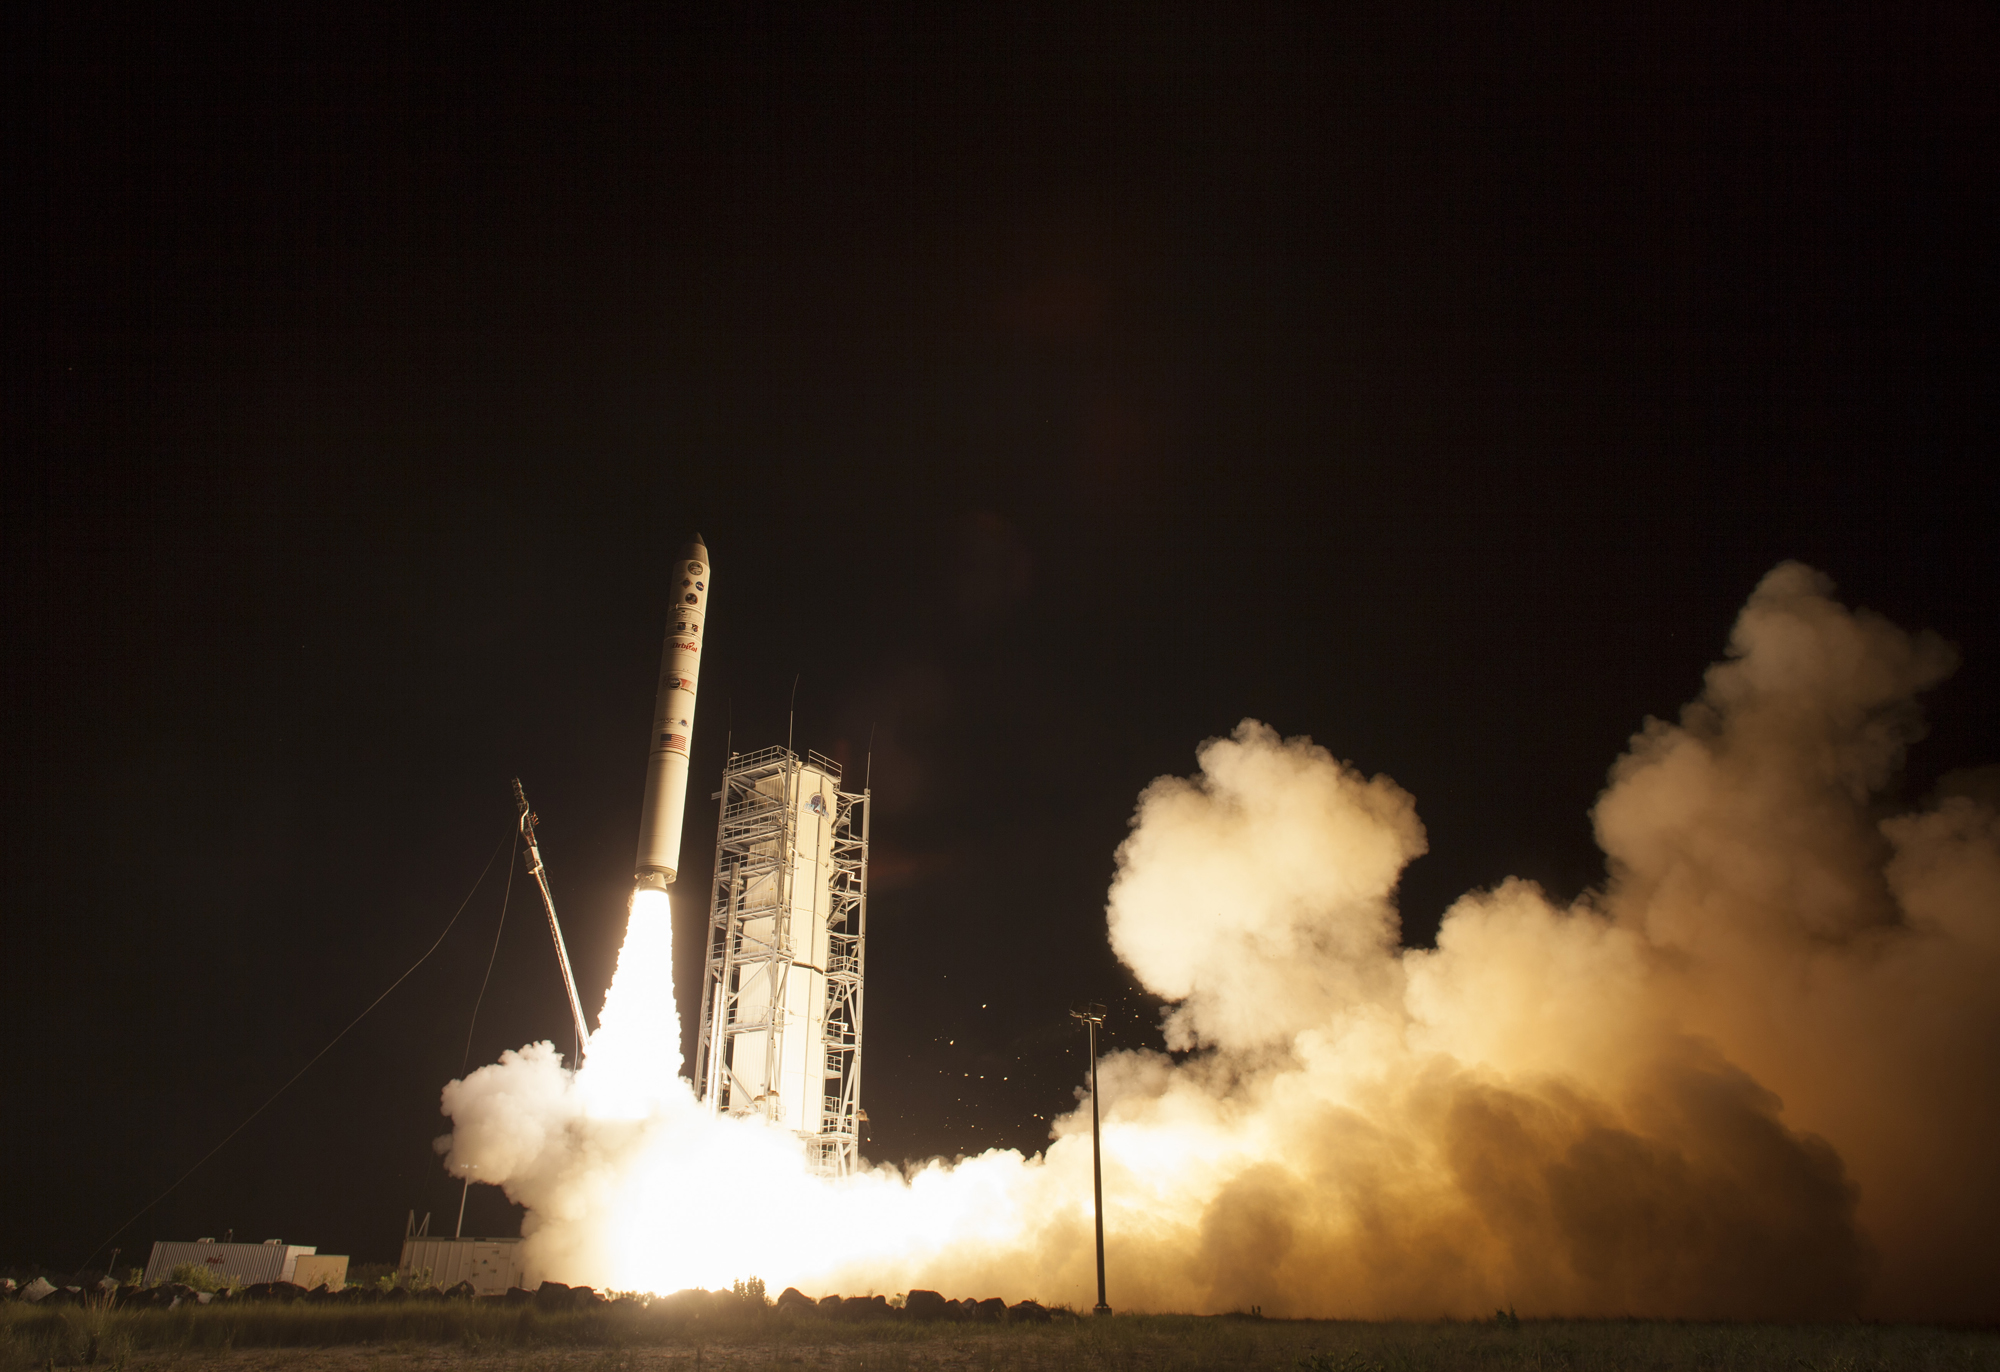 Liftoff! NASA's LADEE Moon Probe Blasts Off